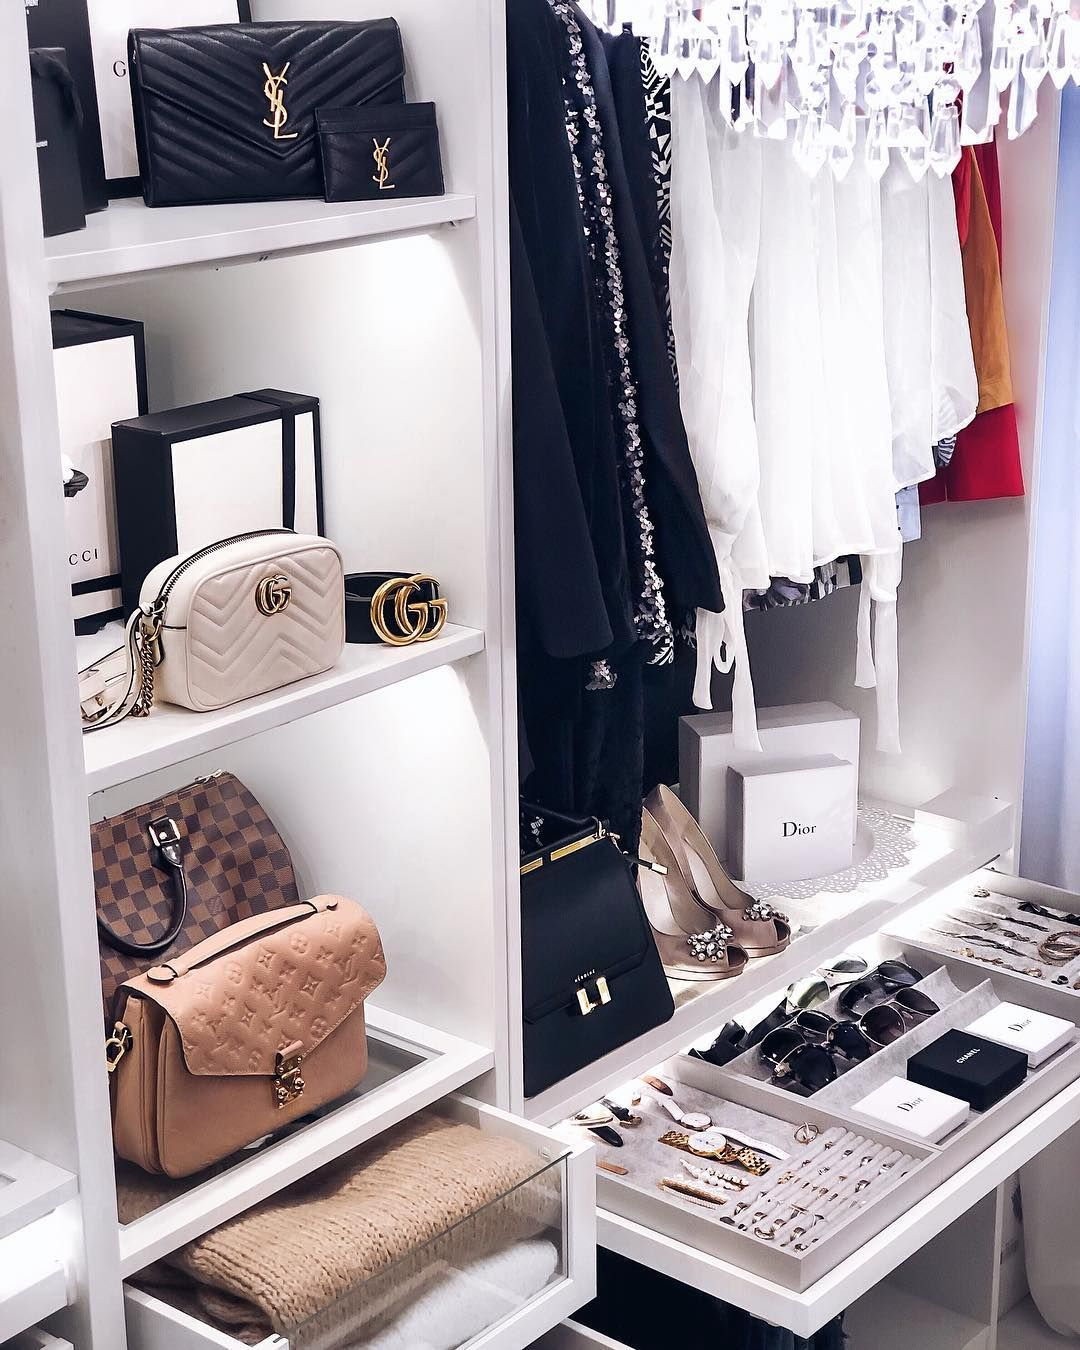 𝐕𝐄𝐑𝐄𝐍𝐀  Fashion Blogger en 15  Idée déco dressing, Idée